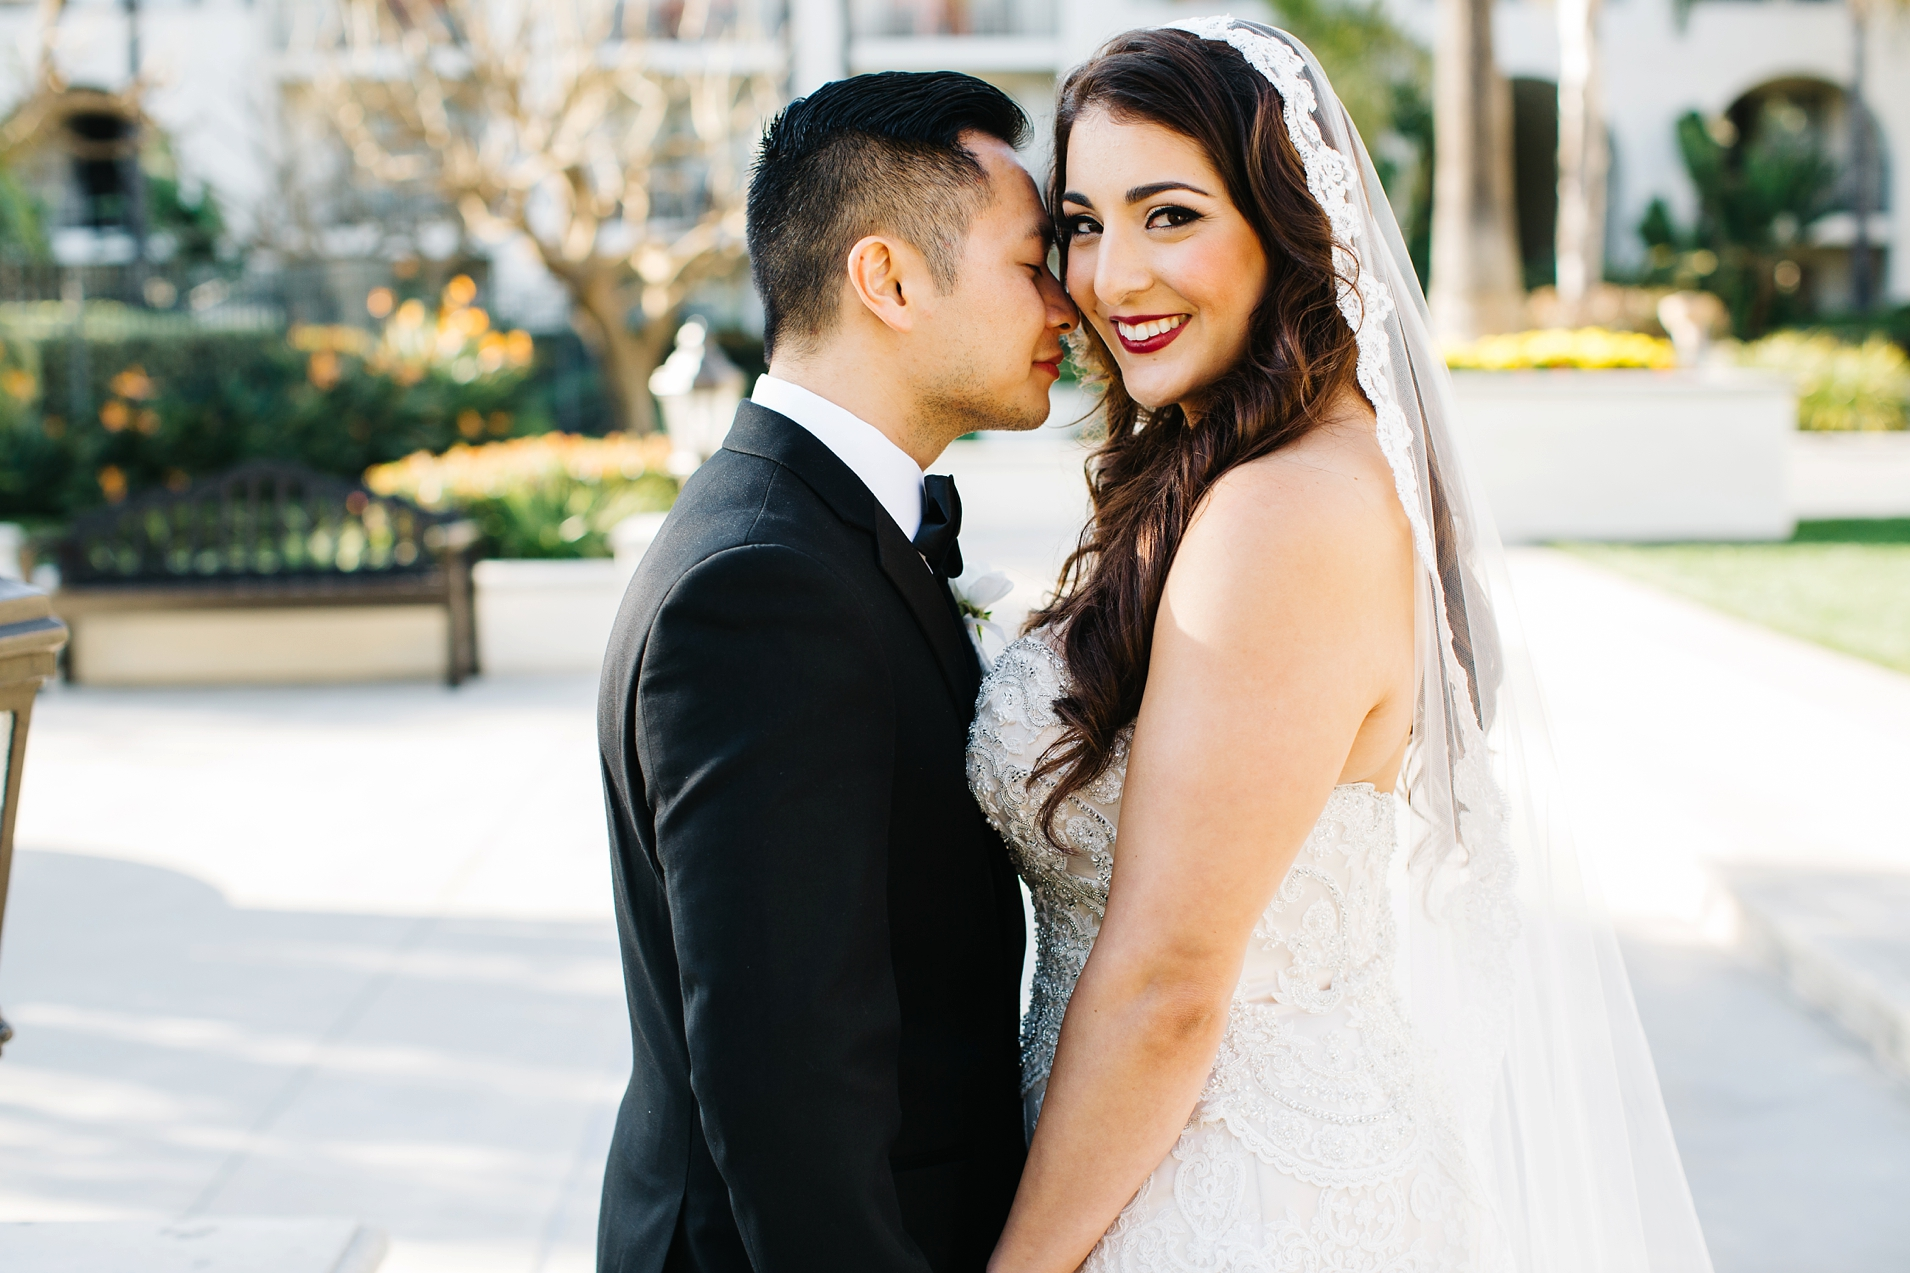 Bride and Groom Pictures - Huntington Beach Wedding